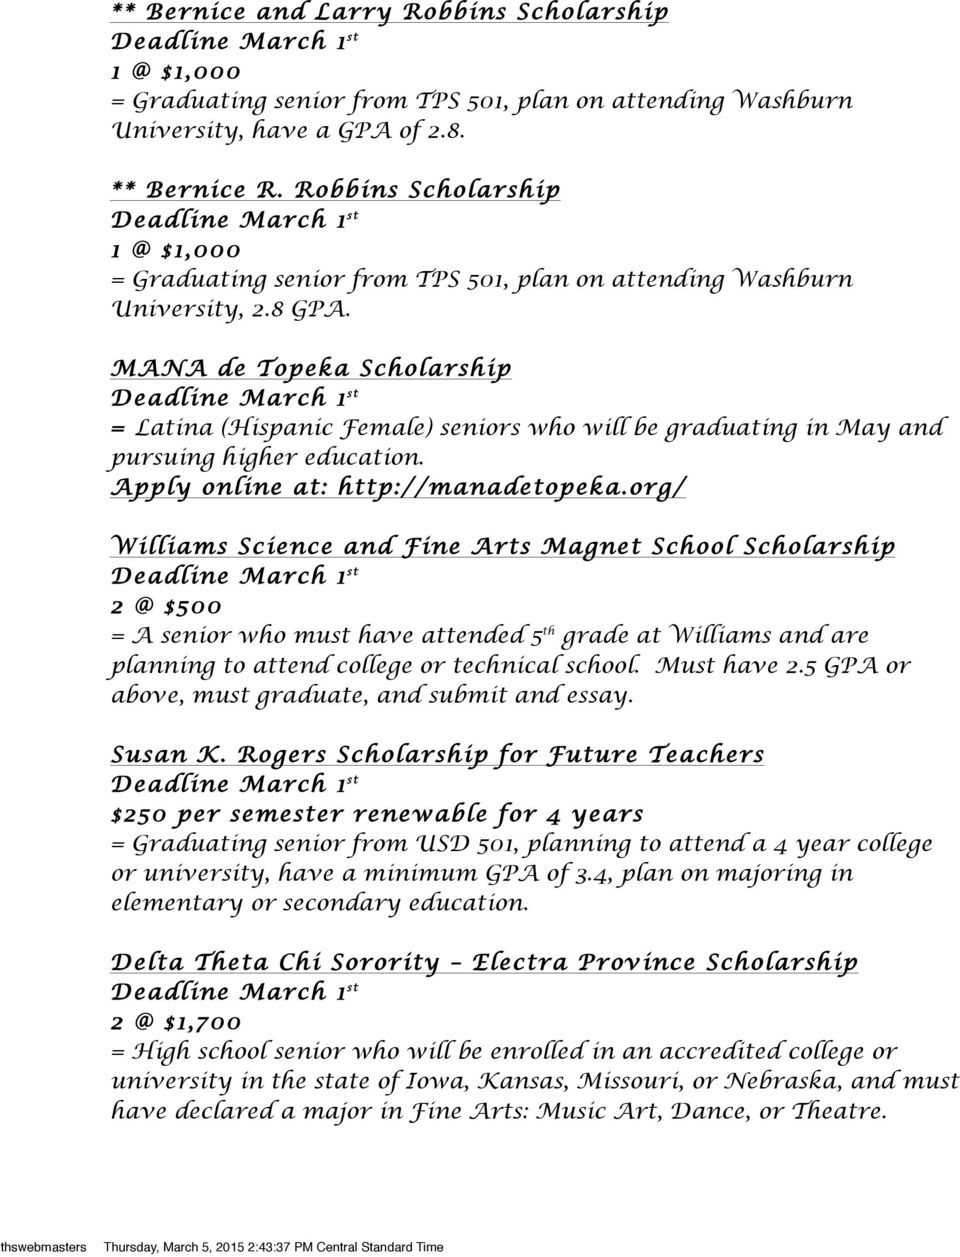 MANA de Topeka Scholarship = Latina (Hispanic Female) seniors who will be graduating in May and pursuing higher education. Apply online at: http://manadetopeka.